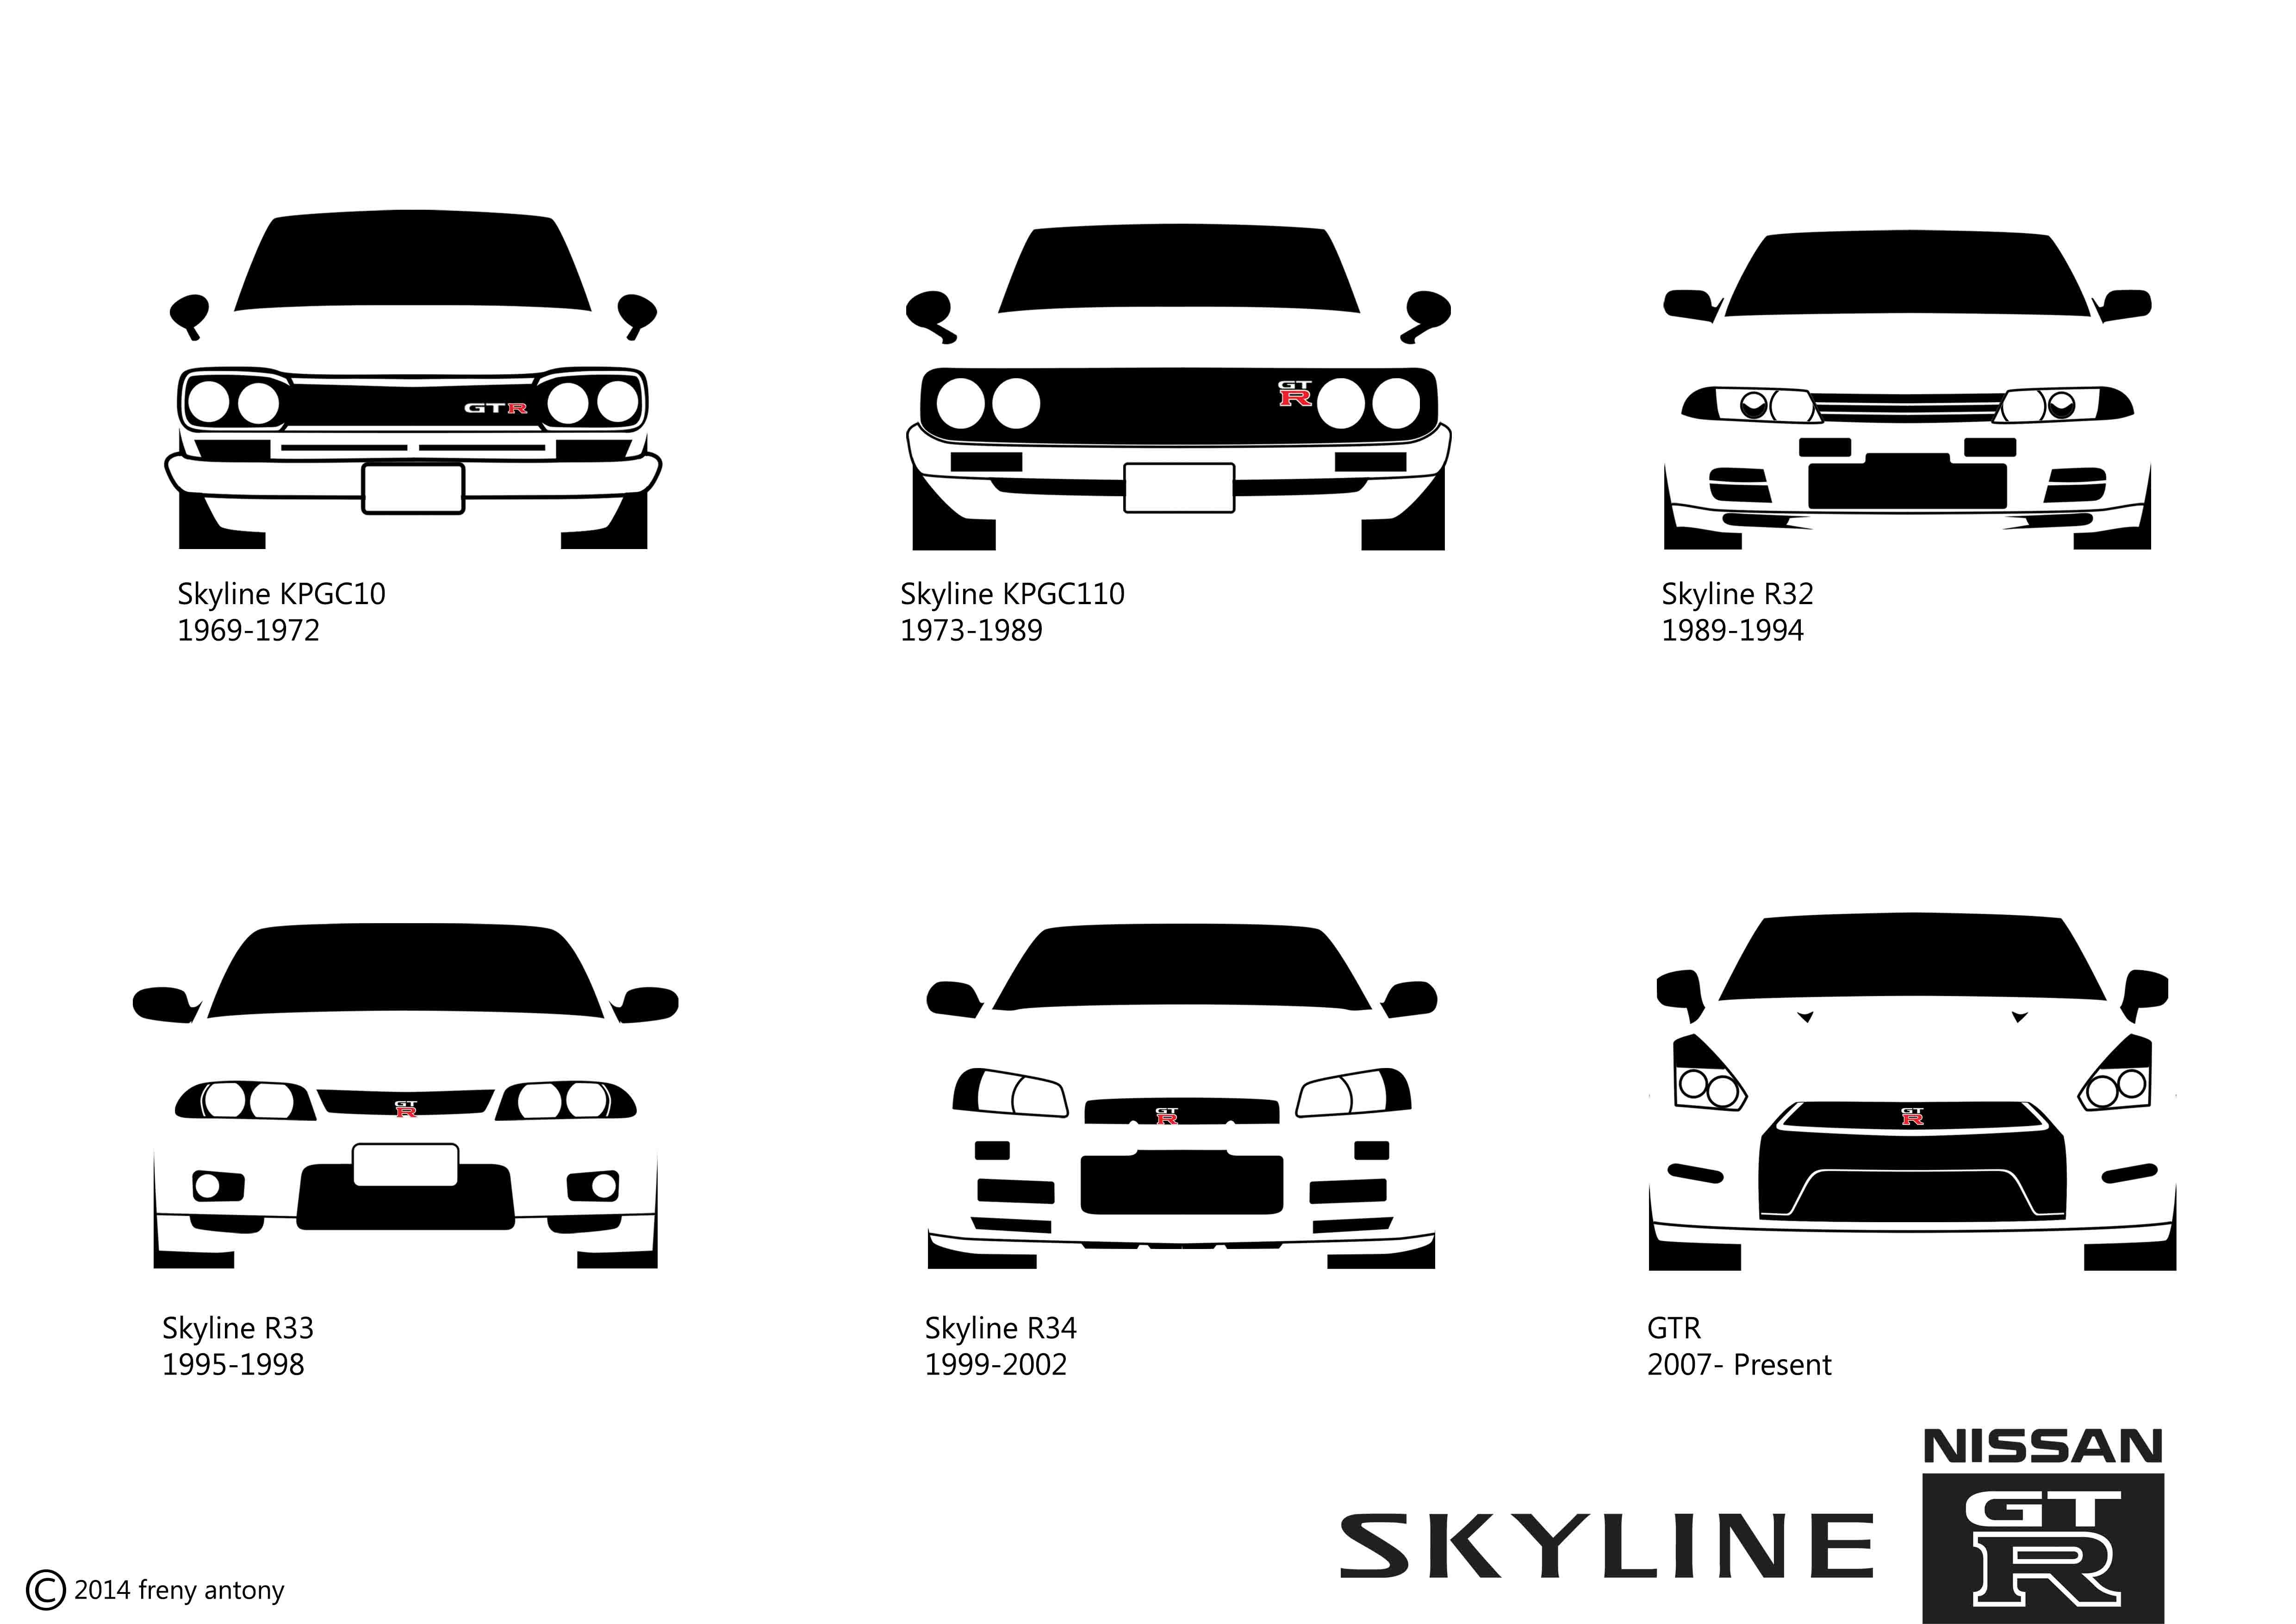 The Front Face Development History Of The Nissan Gtr A K A